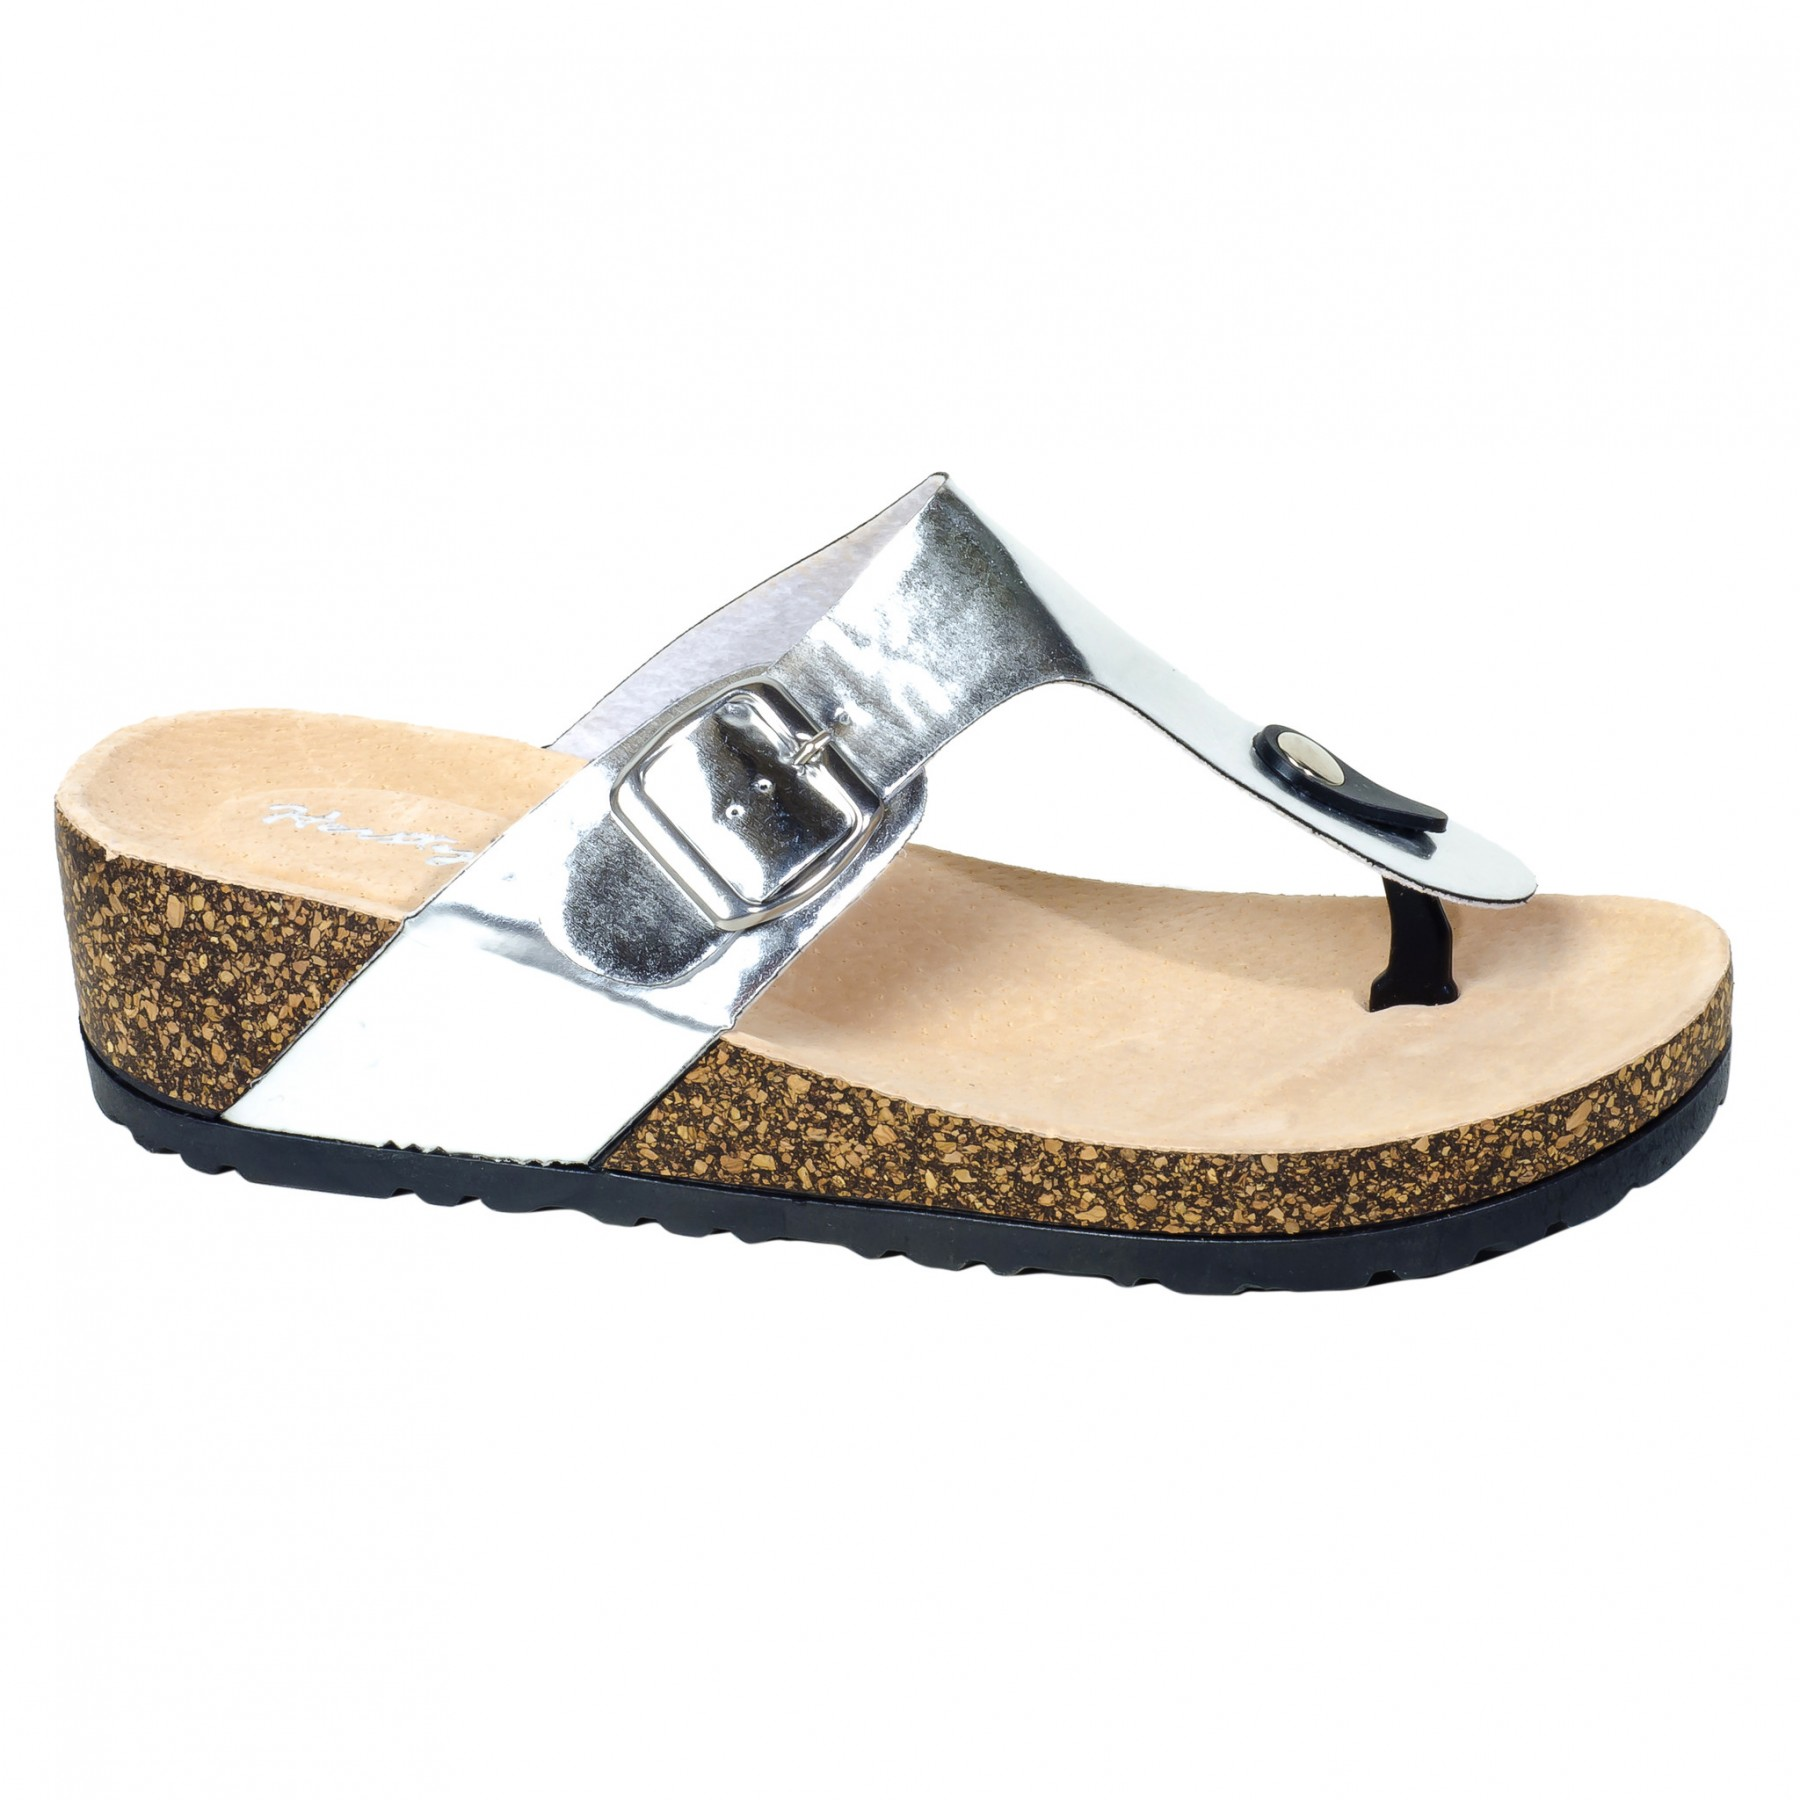 Women's Silver Manmade Caiman Low Wedge Thong with Buckled Metallic Strap